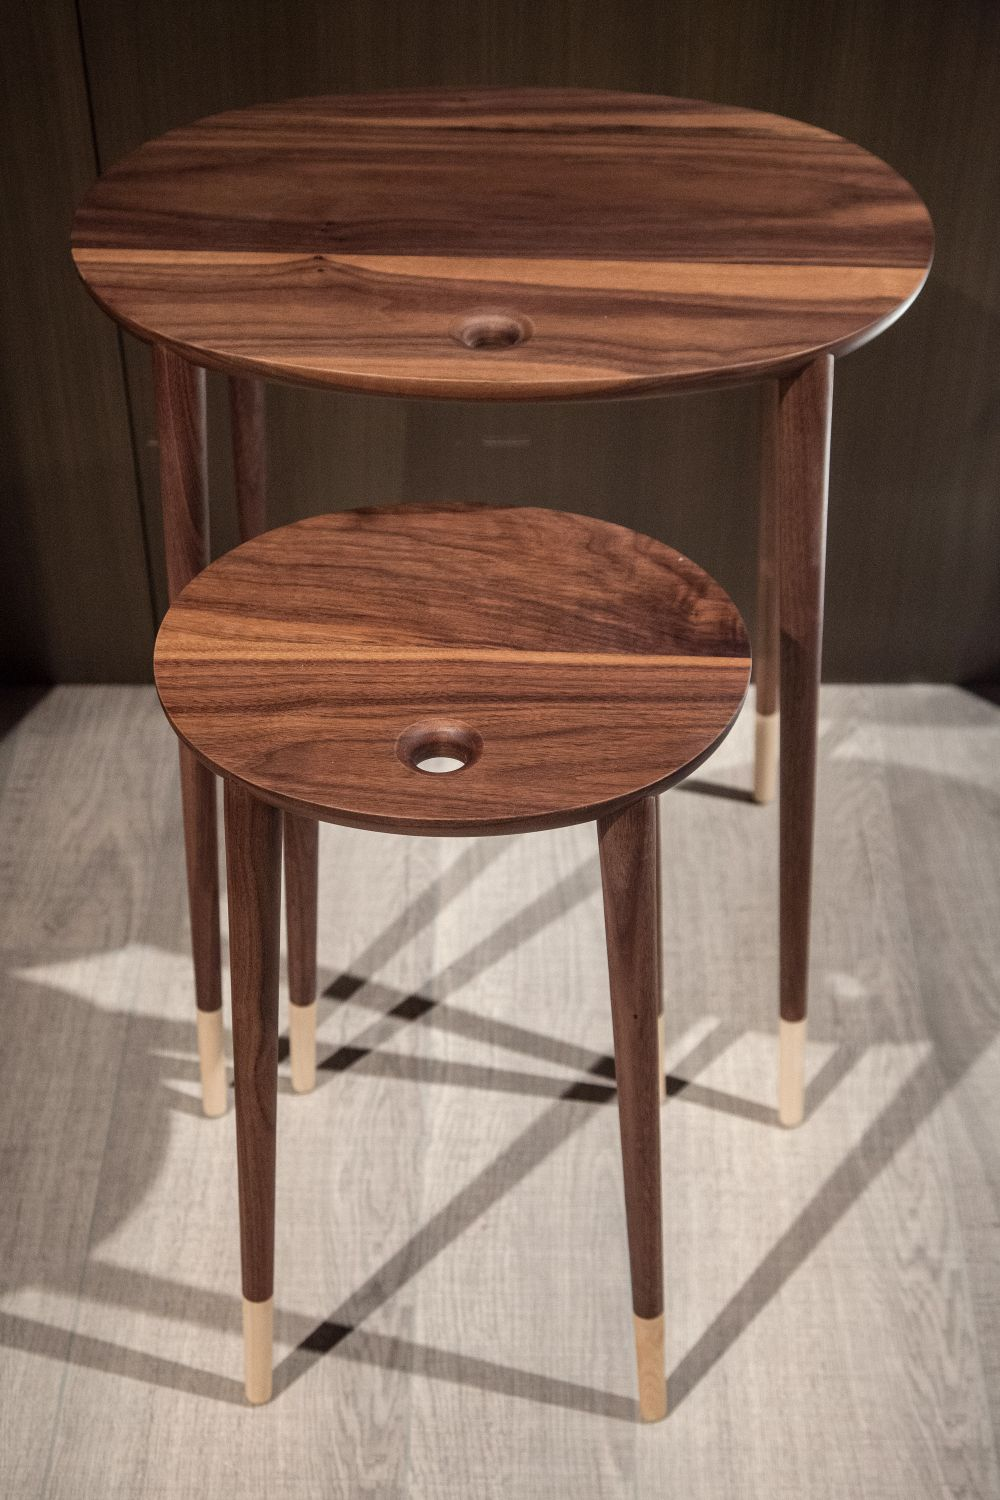 small side table view in gallery JMTTDCS